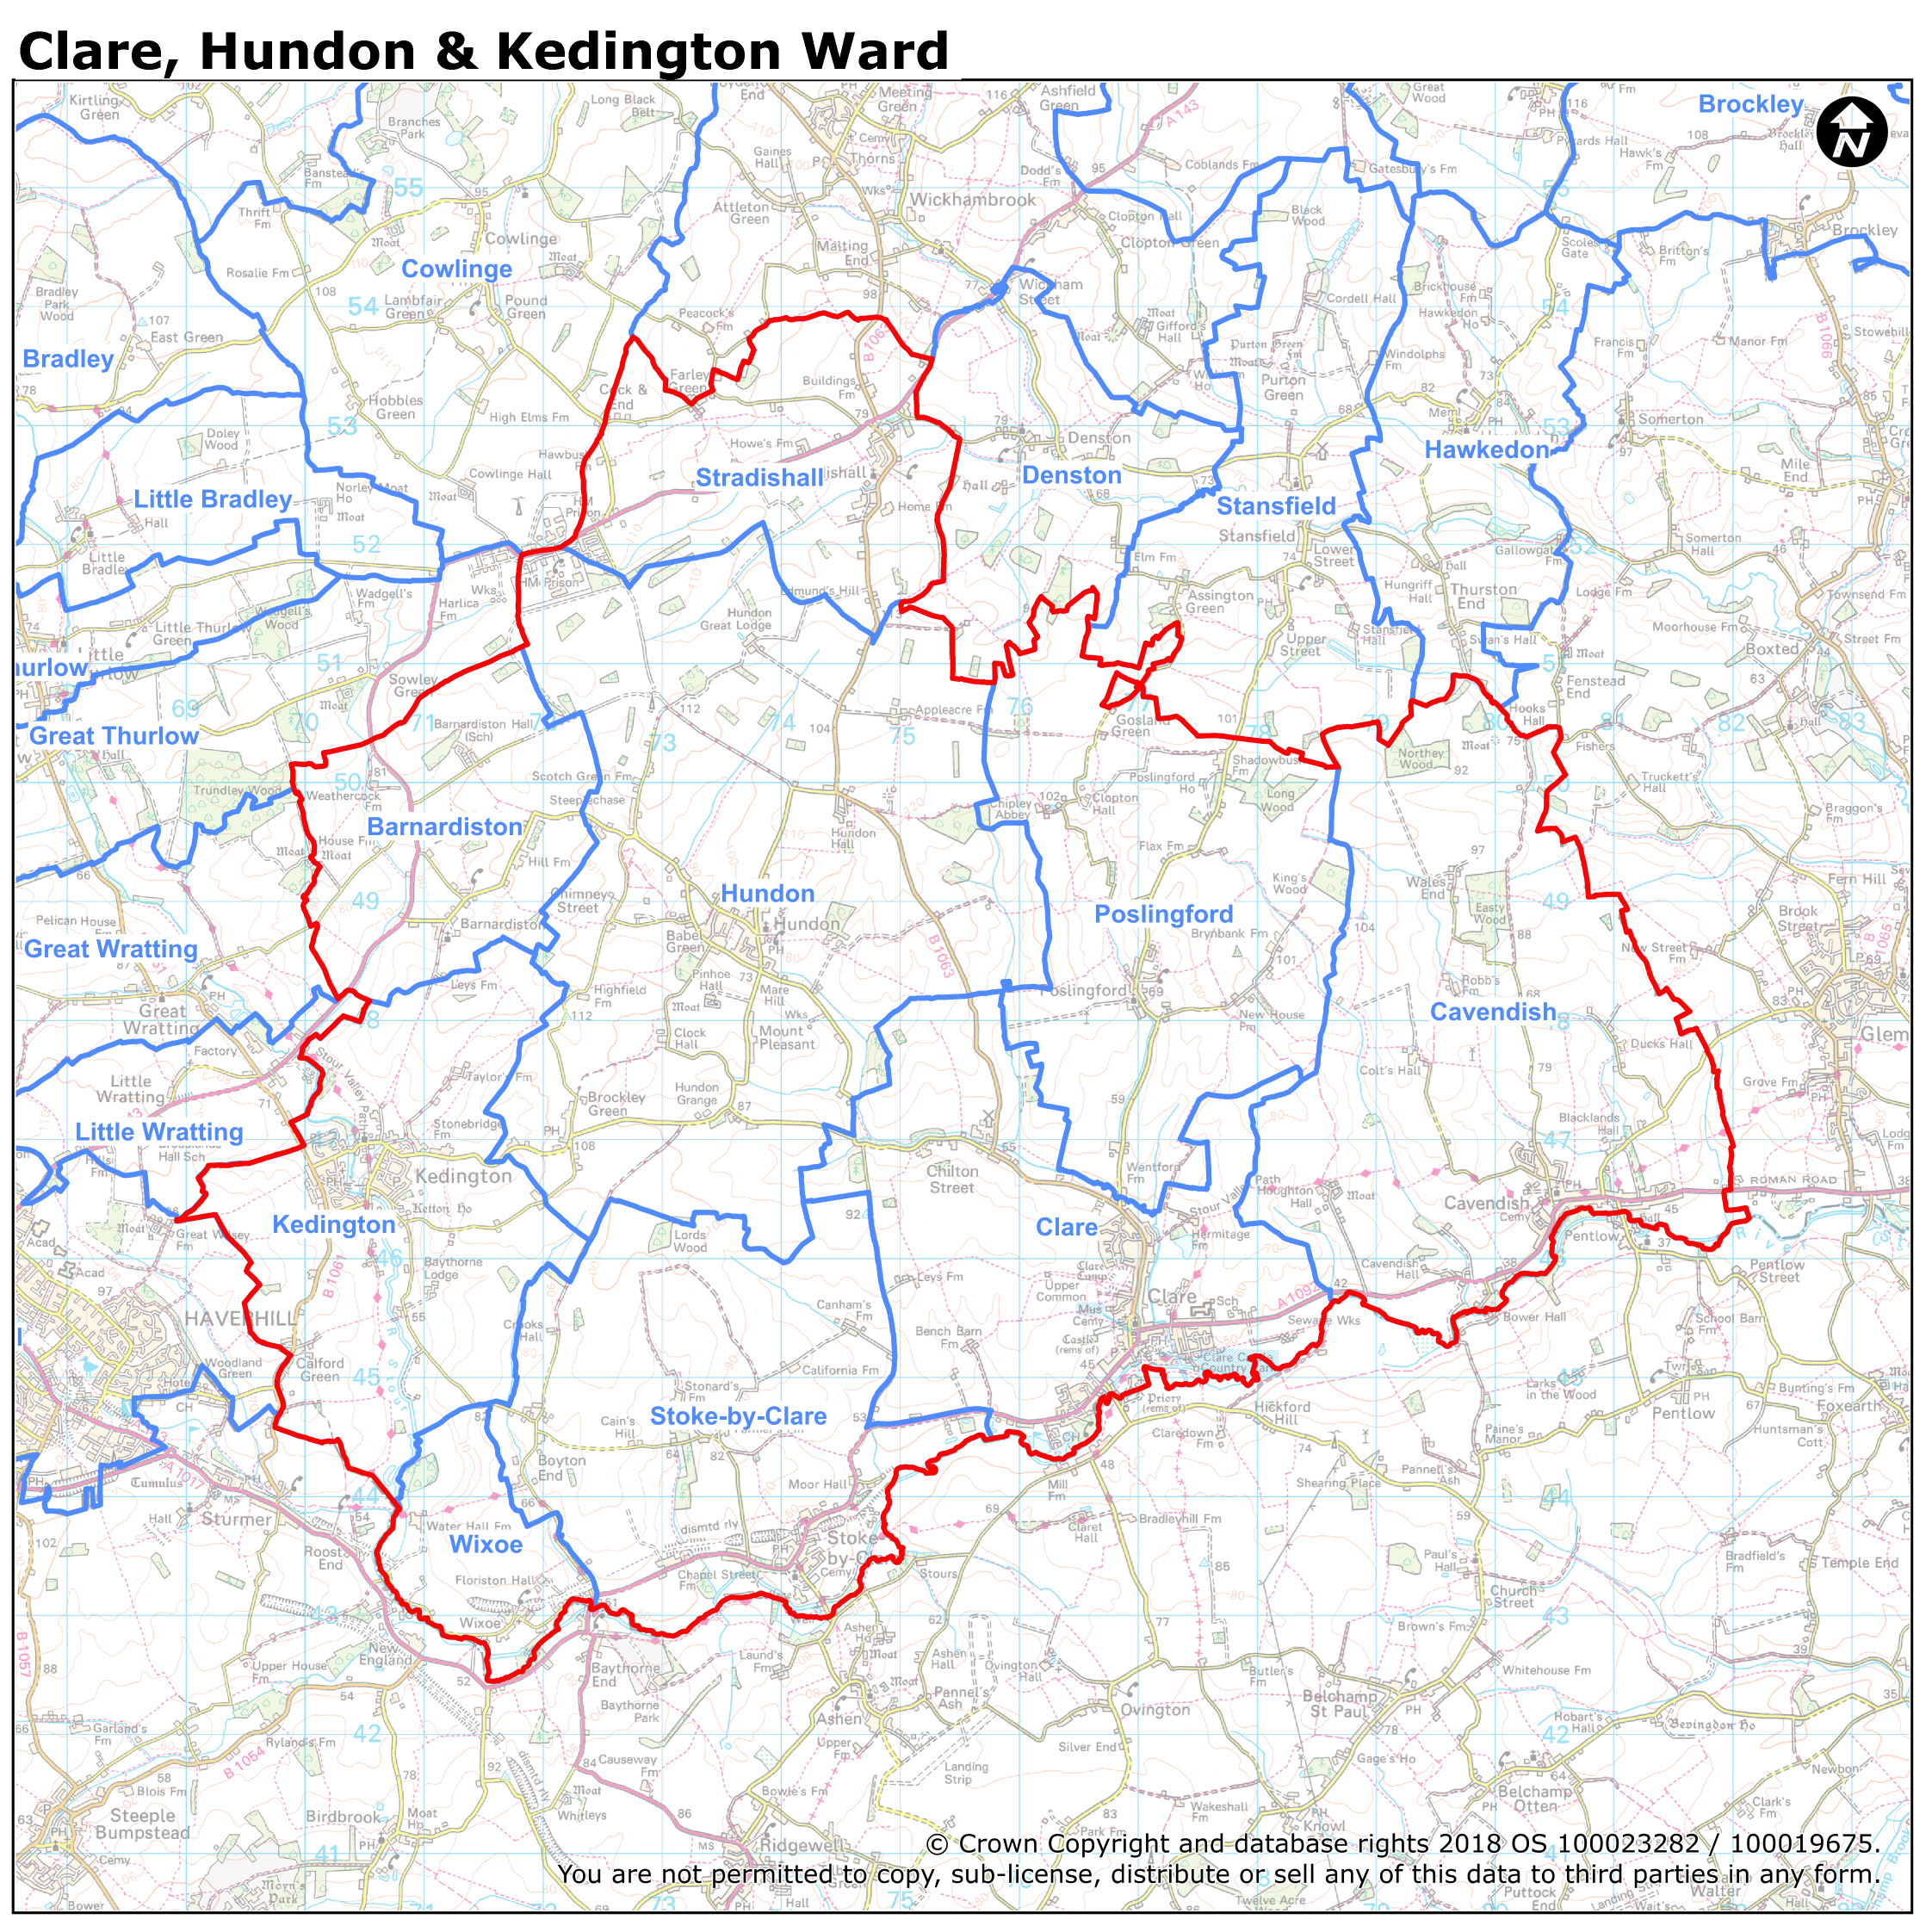 Picture of: Boundaries And Ward Maps